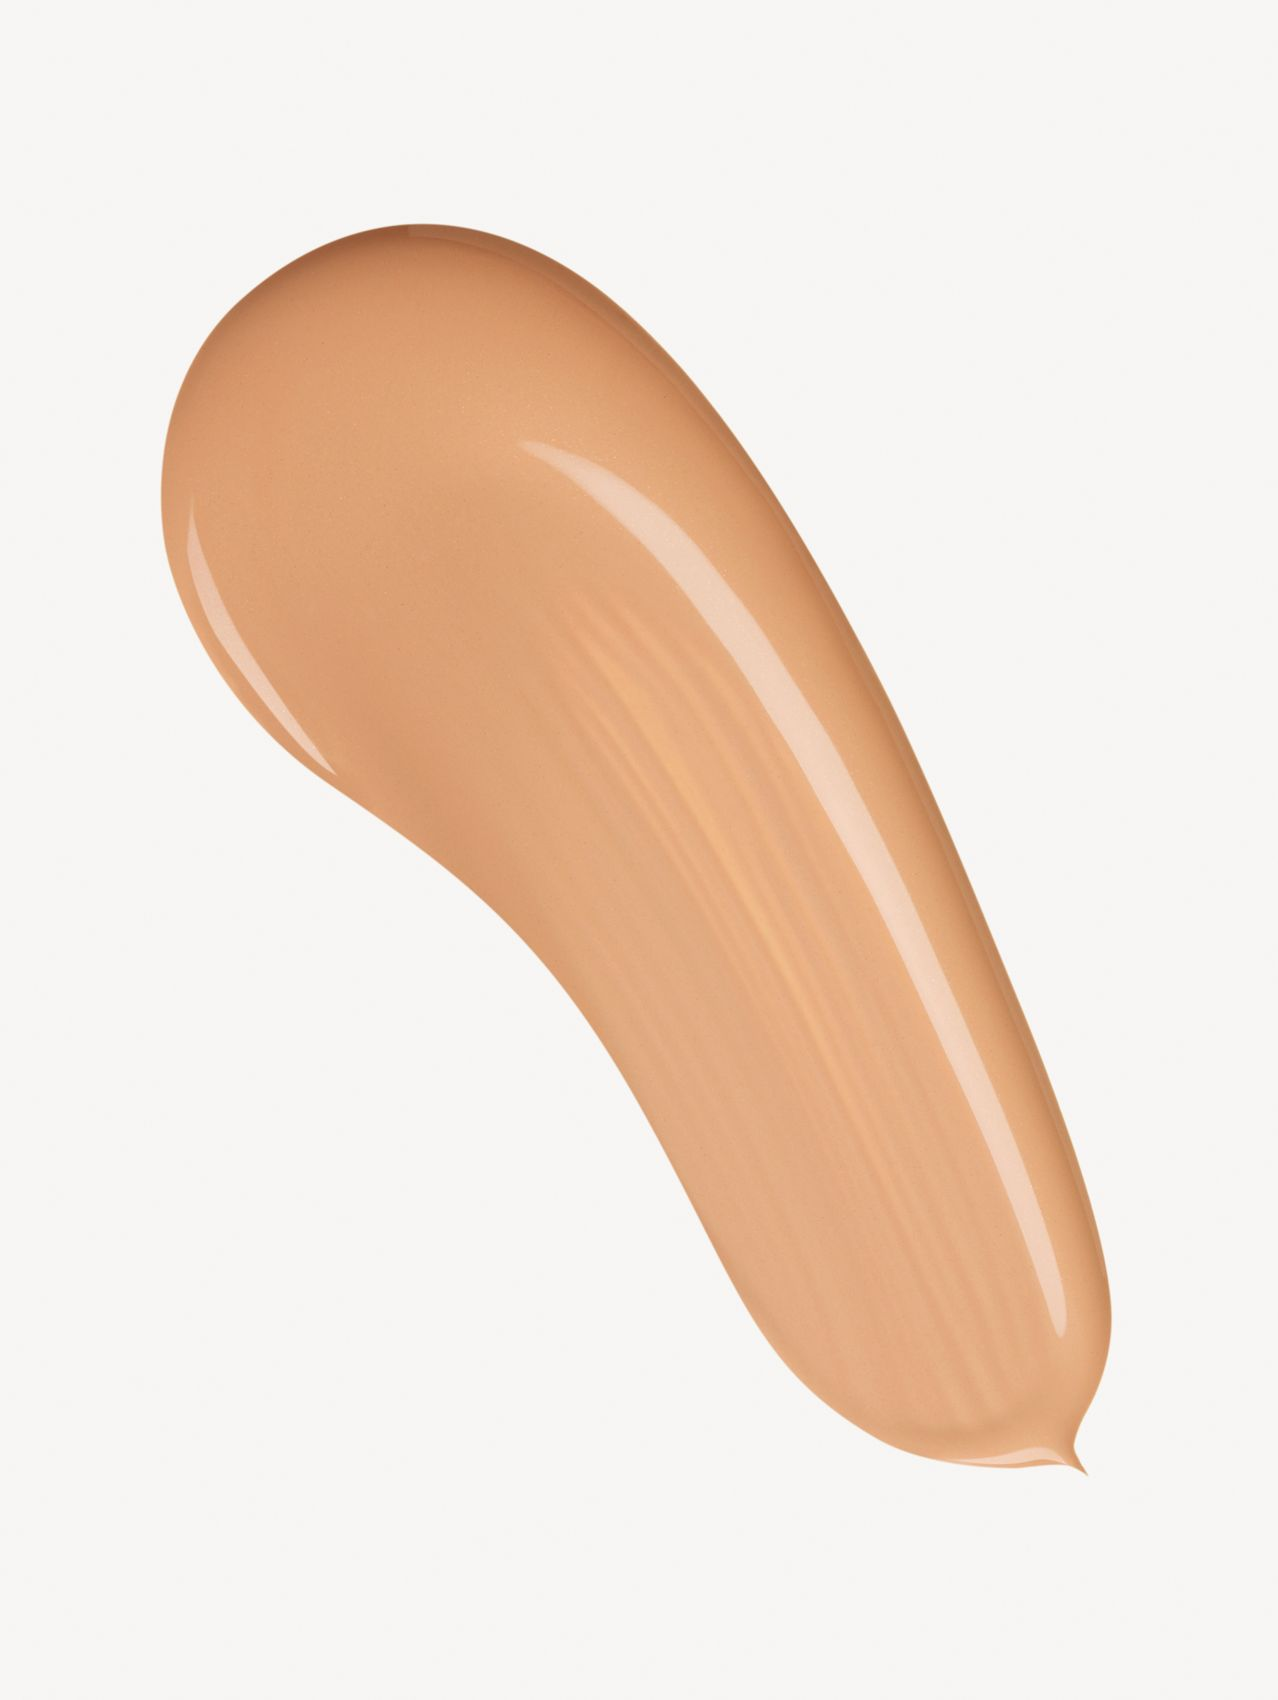 Base Fresh Glow FPS 15 PA+++ – Warm Nude No.34